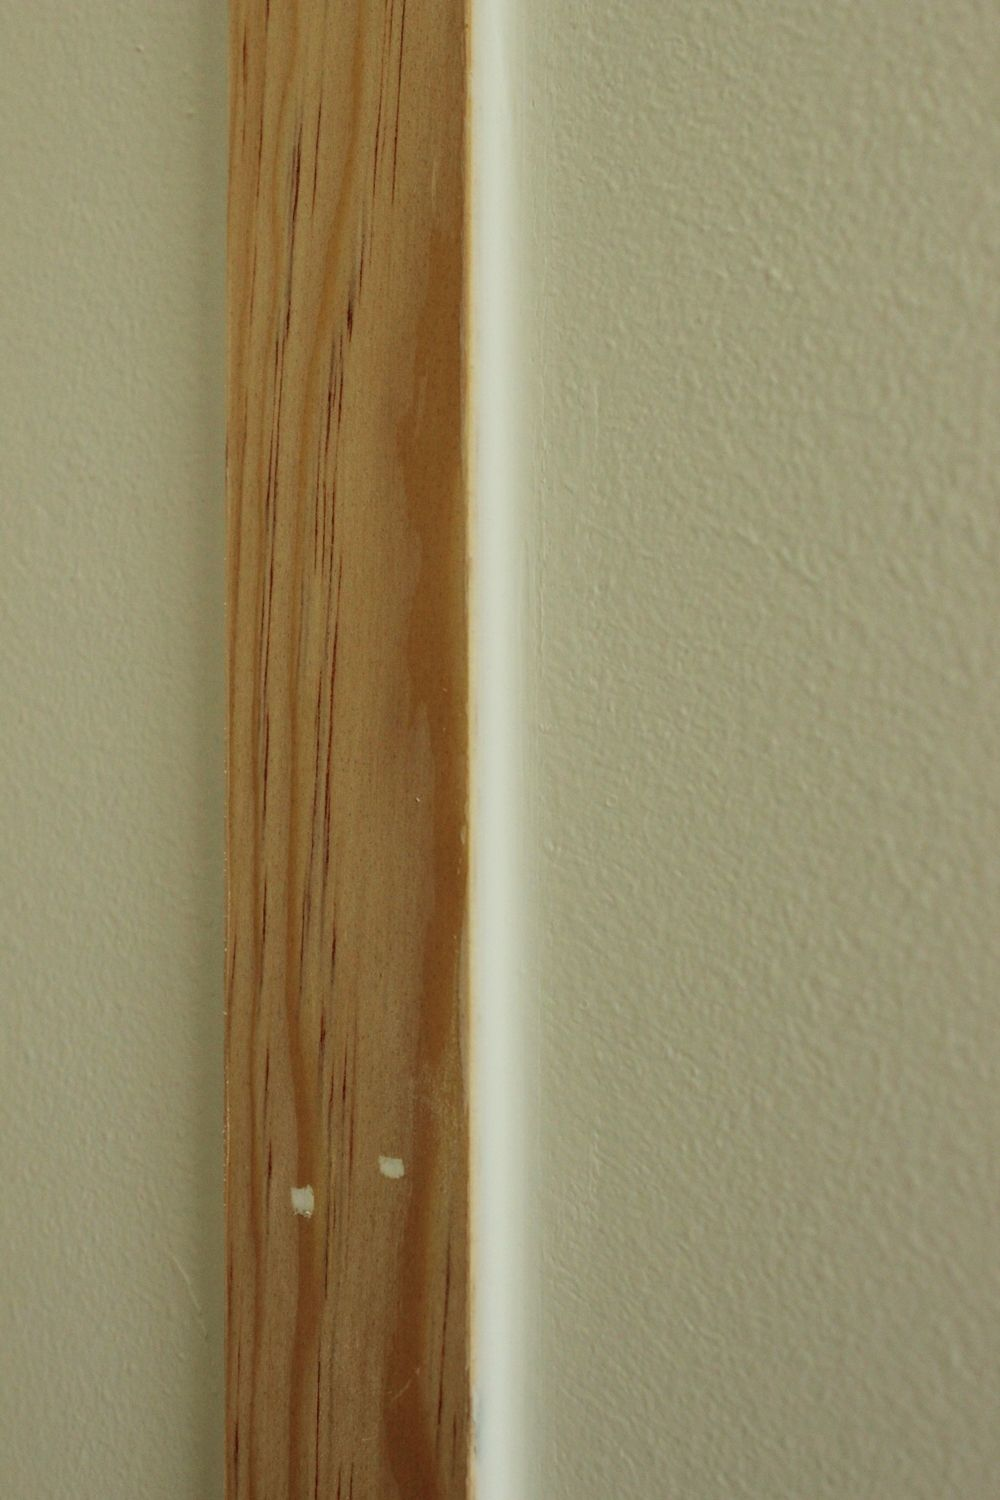 DIY Board and Batten not cover the wall